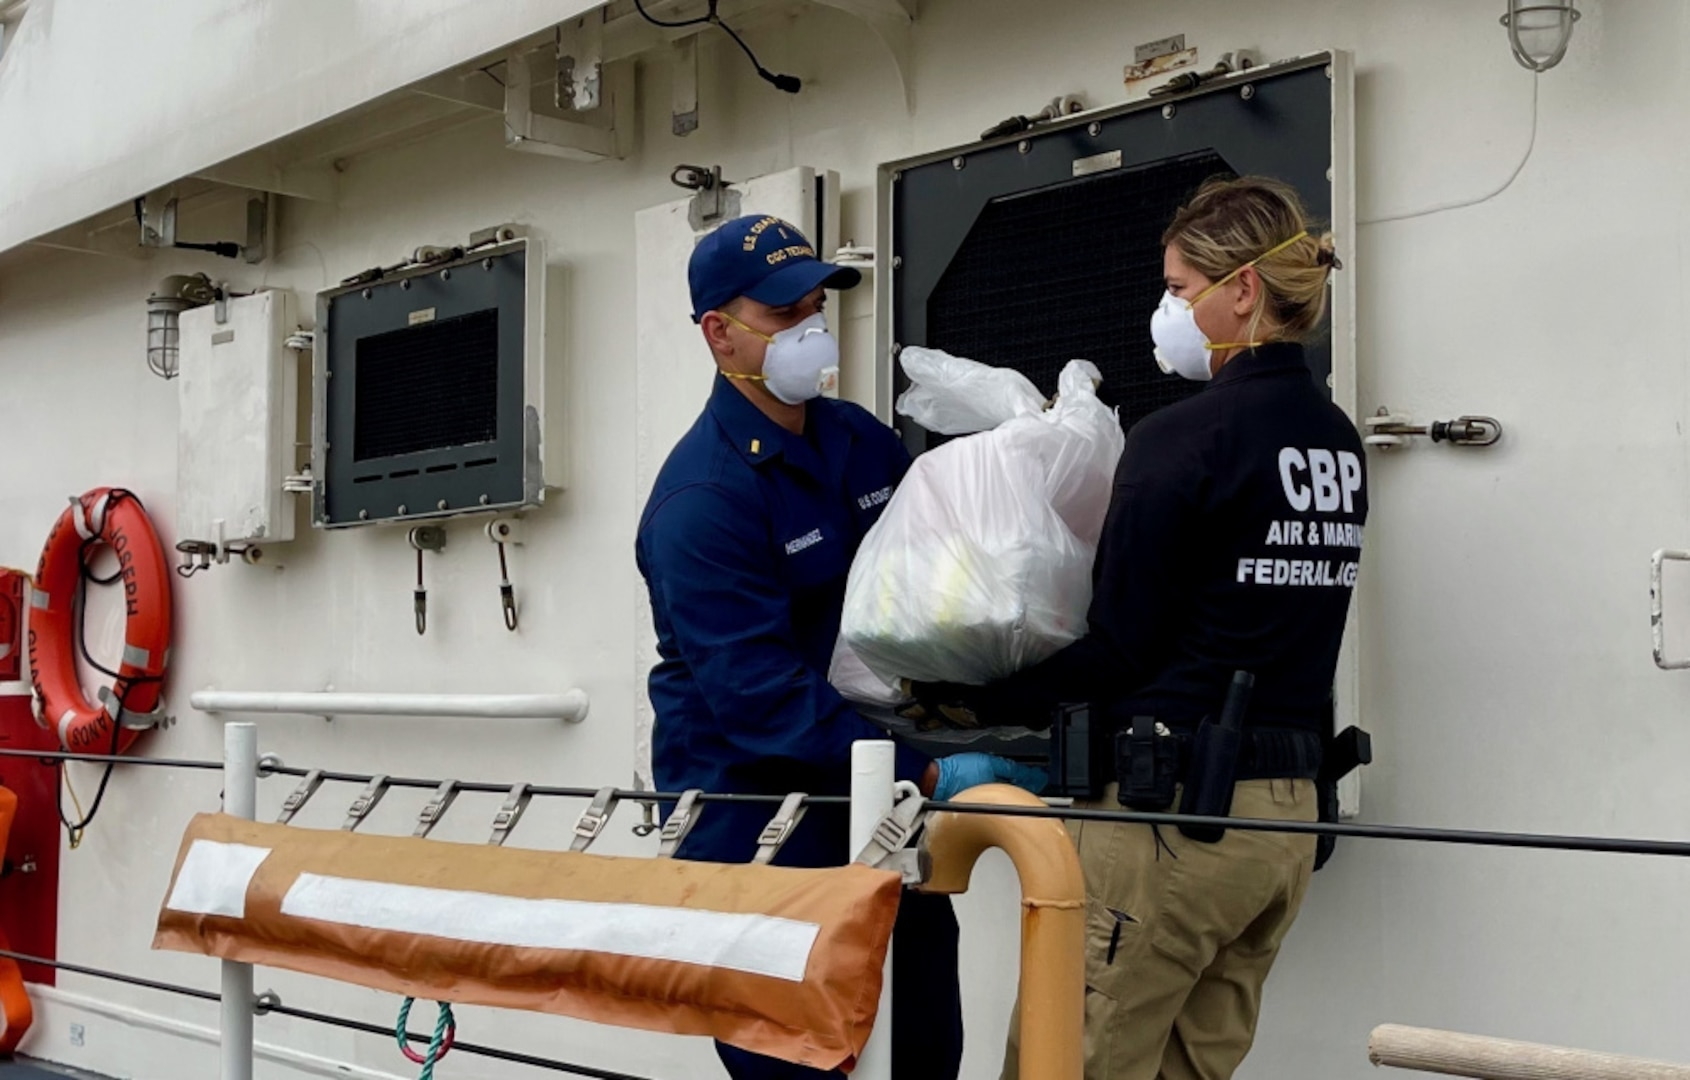 The crew of the Coast Guard Joseph Tezanos offloads nearly $15 million in cocaine and transfers custody of two suspected smugglers at Coast Guard Base San Juan July 12, 2021. Cutter Joseph Tezanos, with the assistance of a Customs and Border Protection (CBP) Air and Marine Operations (AMO) Multi-Role Enforcement Aircraft (MEA) aircraft, interdicted a go-fast vessel in Mona Passage waters July 10, 2021, which resulted in the apprehension of the smugglers and seizure of 502 kilograms of cocaine.  The interdiction resulted from multi-agency efforts in support of U.S. Southern Command's enhanced counter-narcotics operations in the Western Hemisphere and coordination with the Caribbean Corridor Strike Force (CCSF).  (U.S. Coast Guard photo).